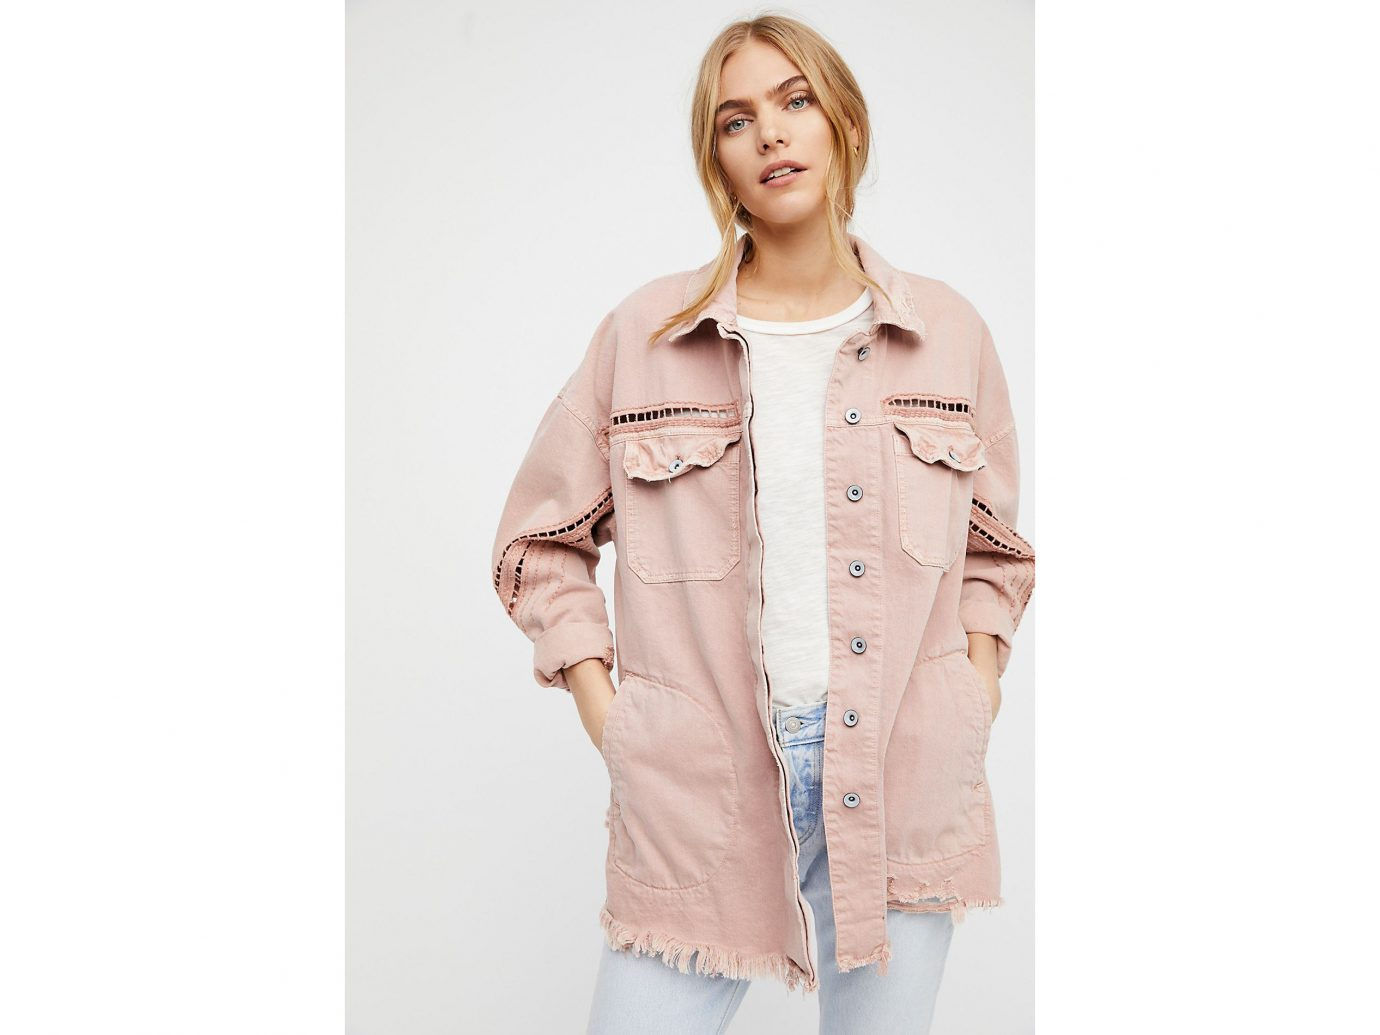 Packing Tips Spring Travel Style + Design Travel Shop clothing person standing coat wearing posing outerwear fashion model jacket sleeve beige peach dressed